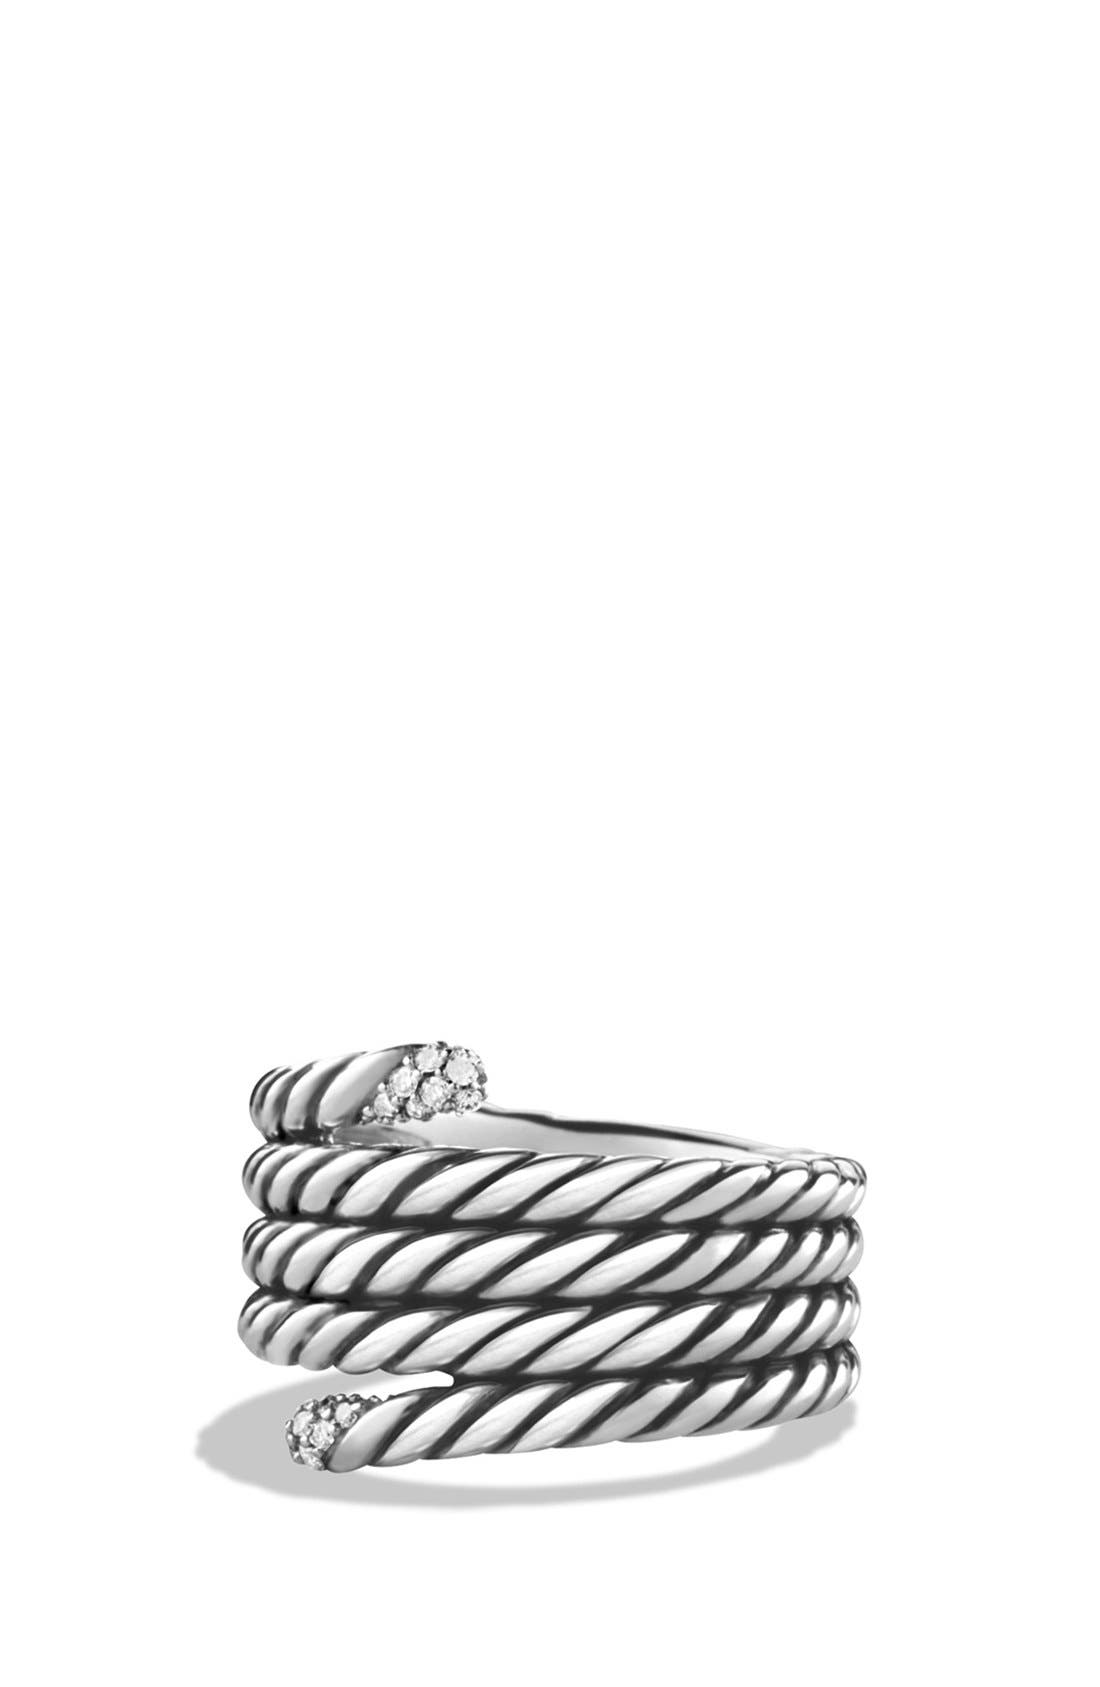 Alternate Image 1 Selected - David Yurman 'Willow' Serpentine Ring with Diamonds